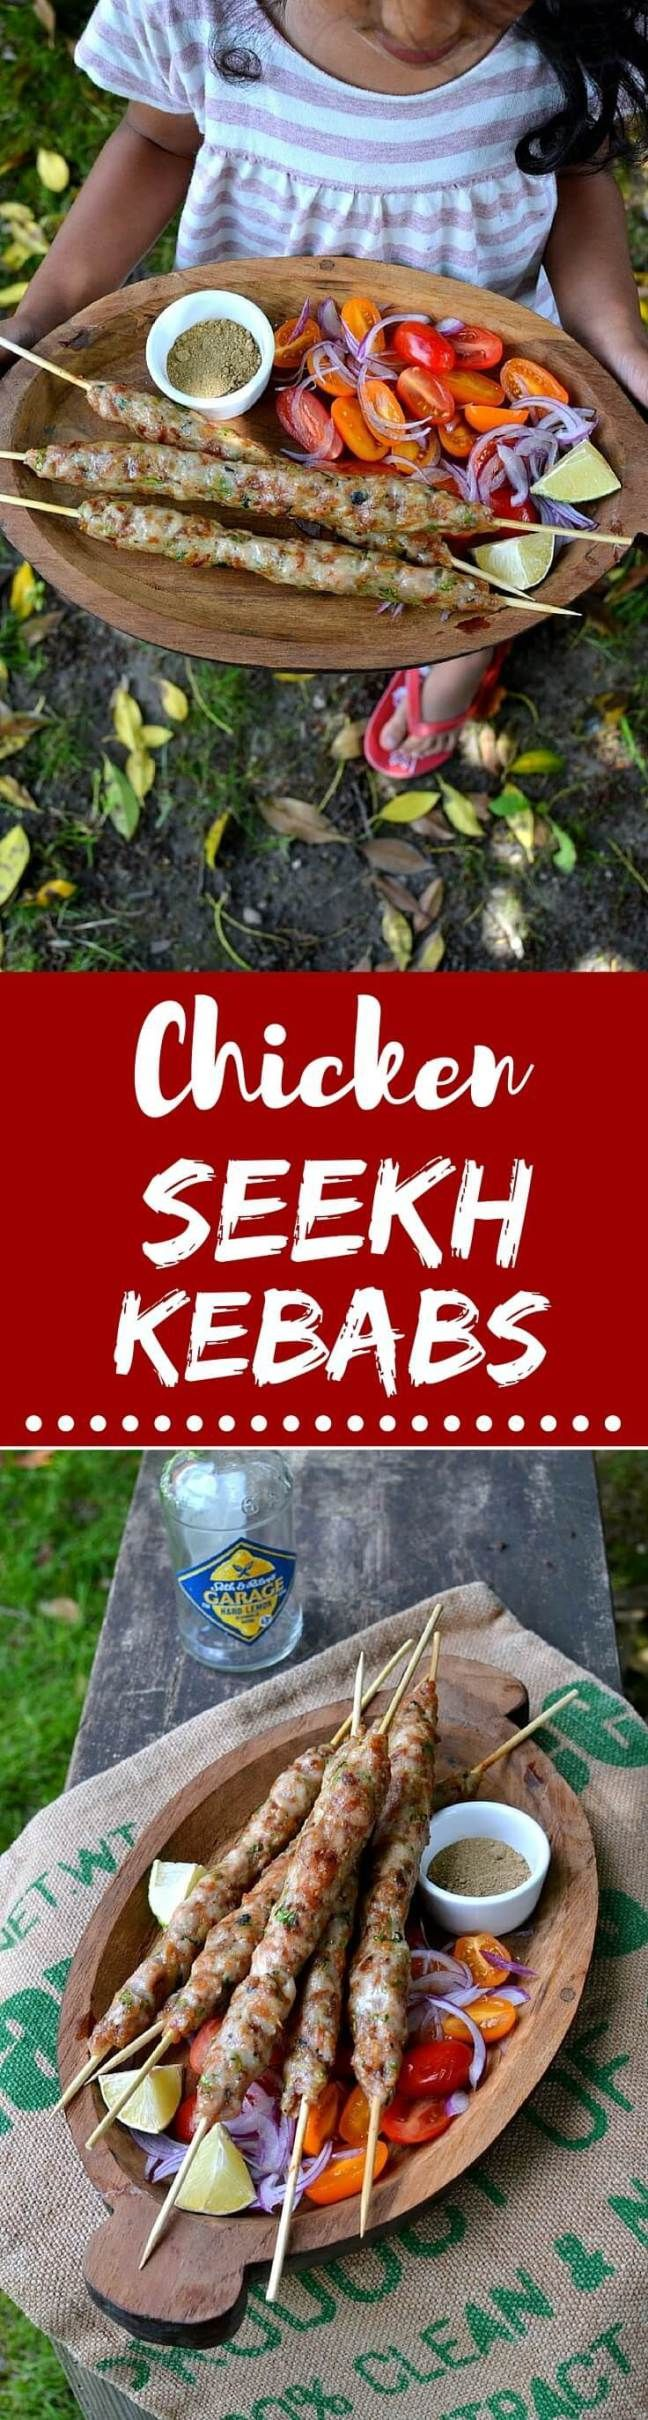 Chicken Seekh Kebabs: Celebrate grilling season with these wonderfully succulent and easy to make kebabs!